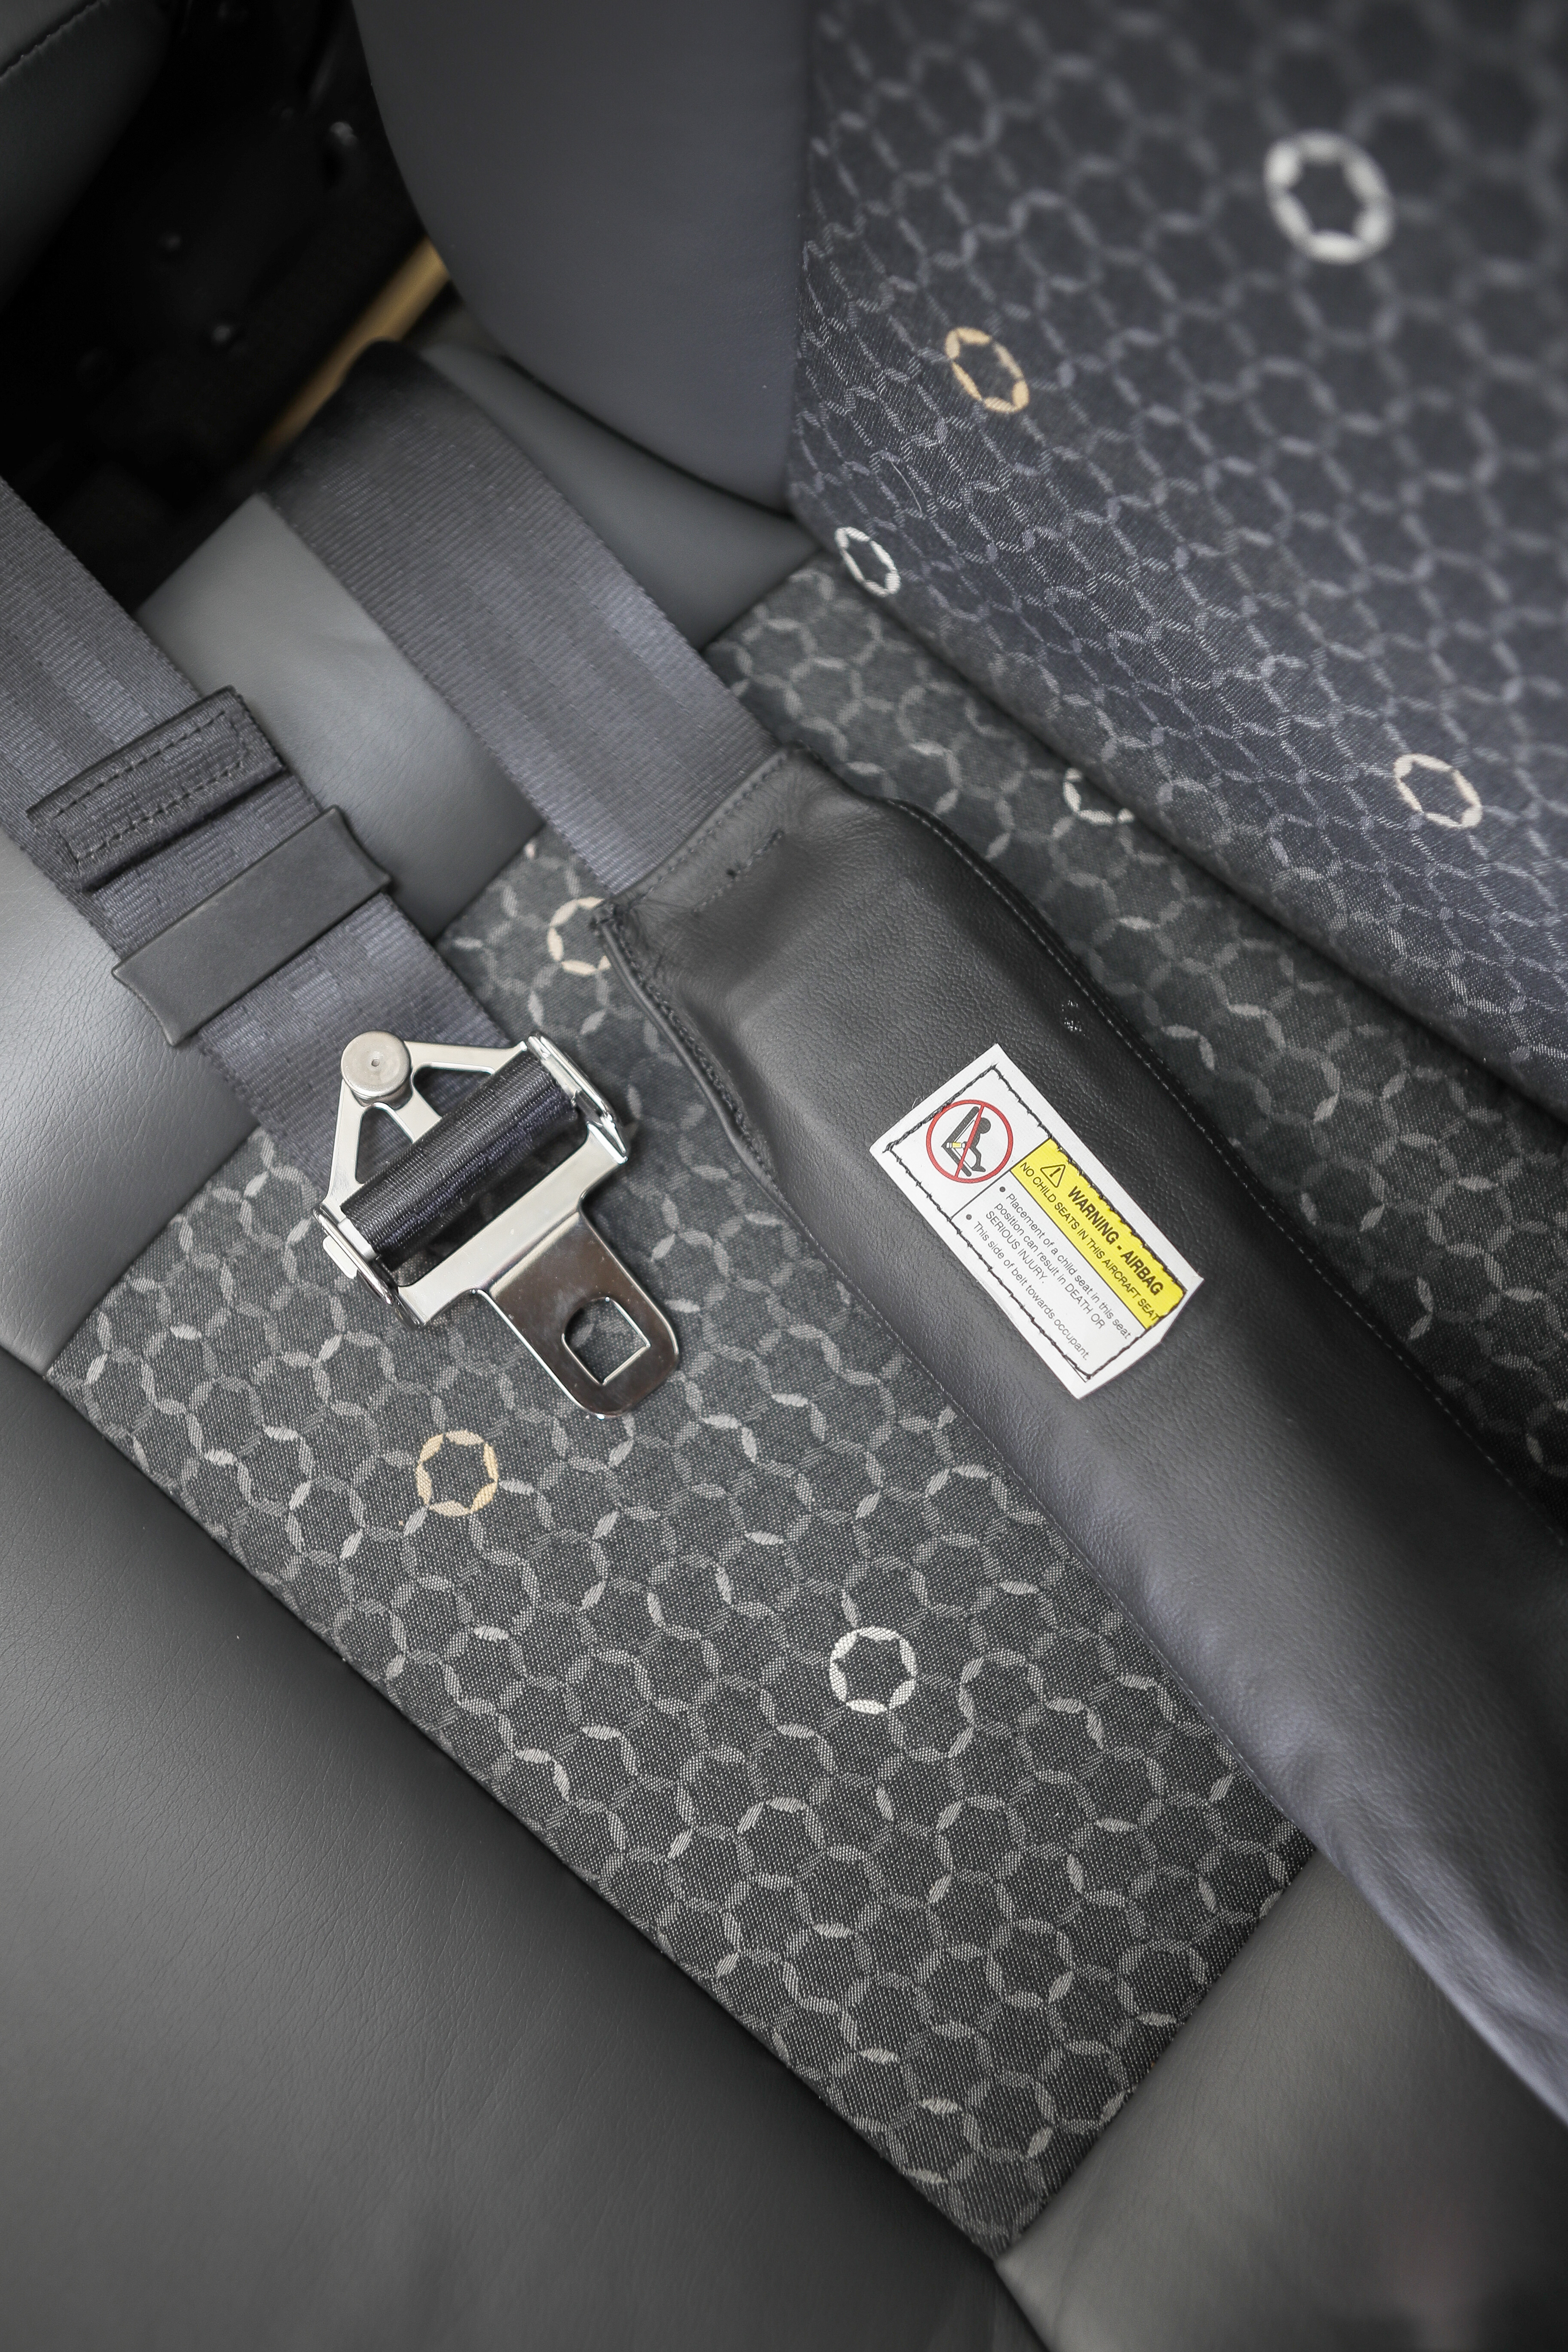 Airbag seatbelts provided by AmSafe.